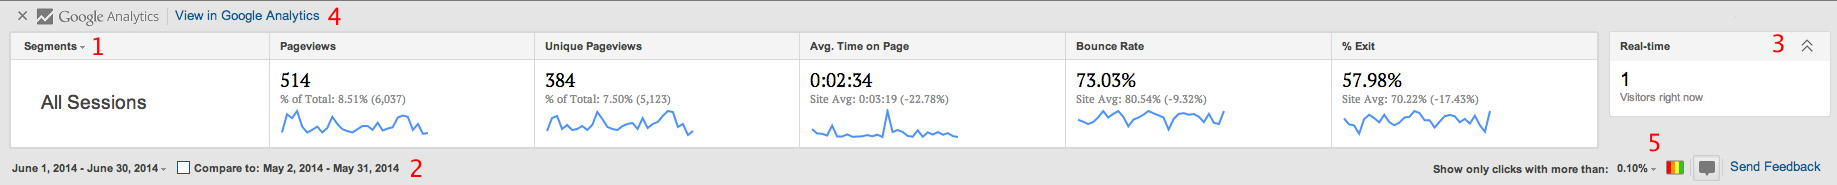 toolbar google analytics - final